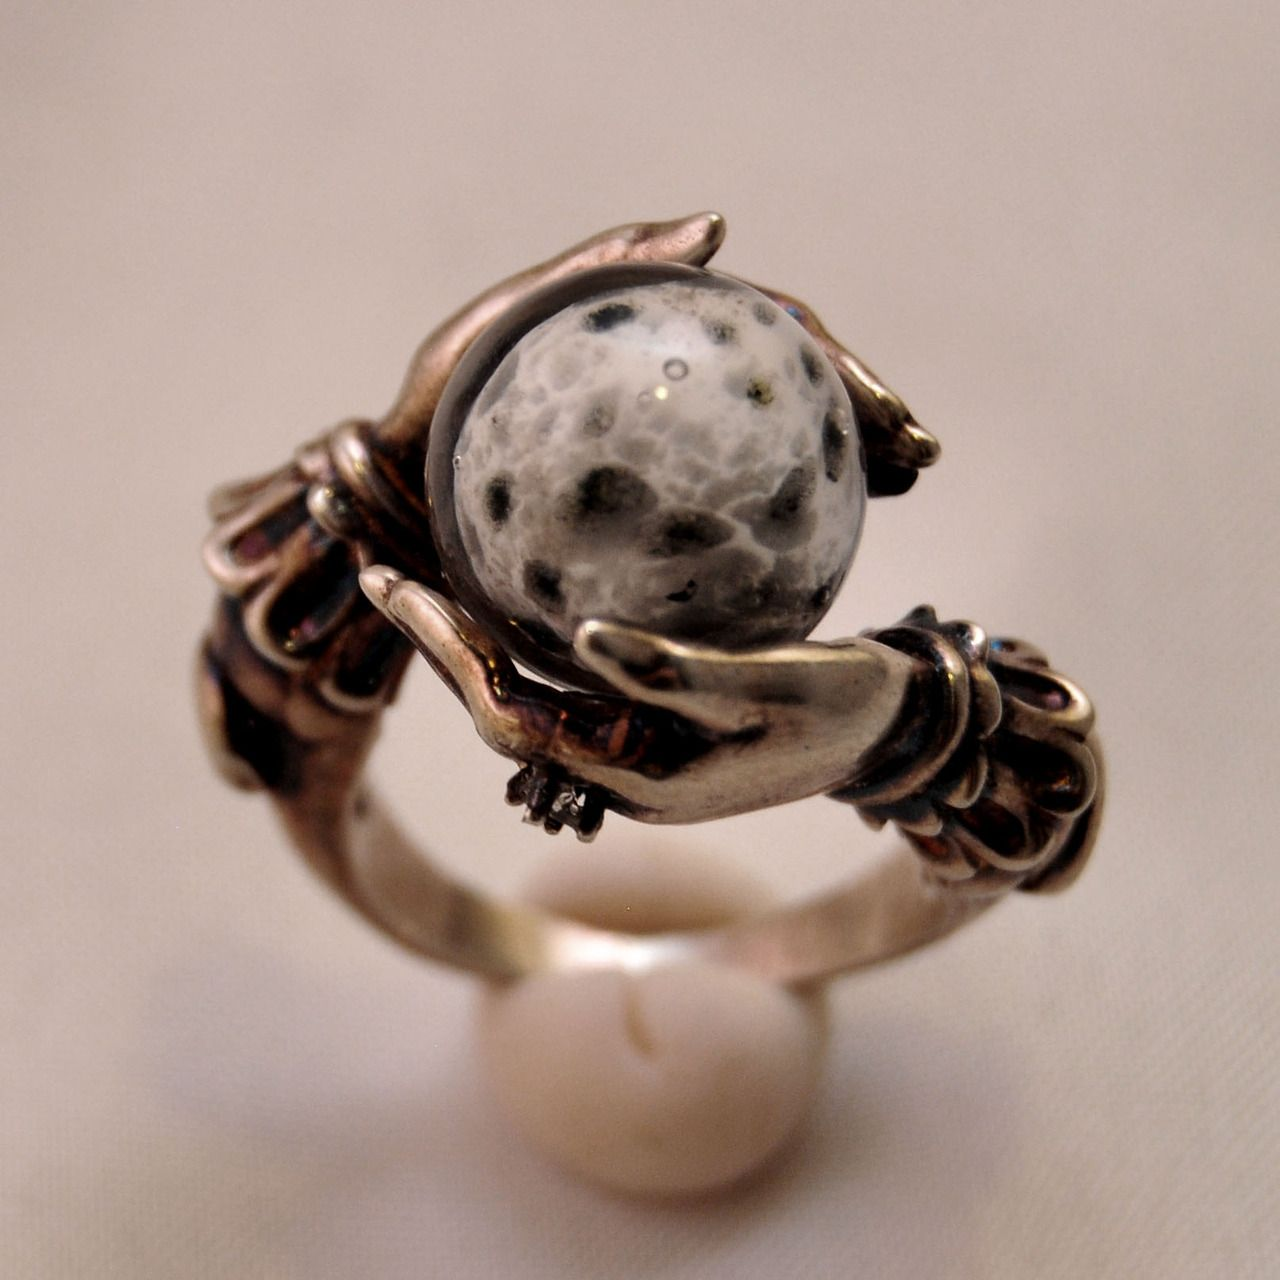 omniastudios:  Celestial Lunar Oracle ring with deeply antiqued sterling silver, white topaz accent. www.omniaoddities.com